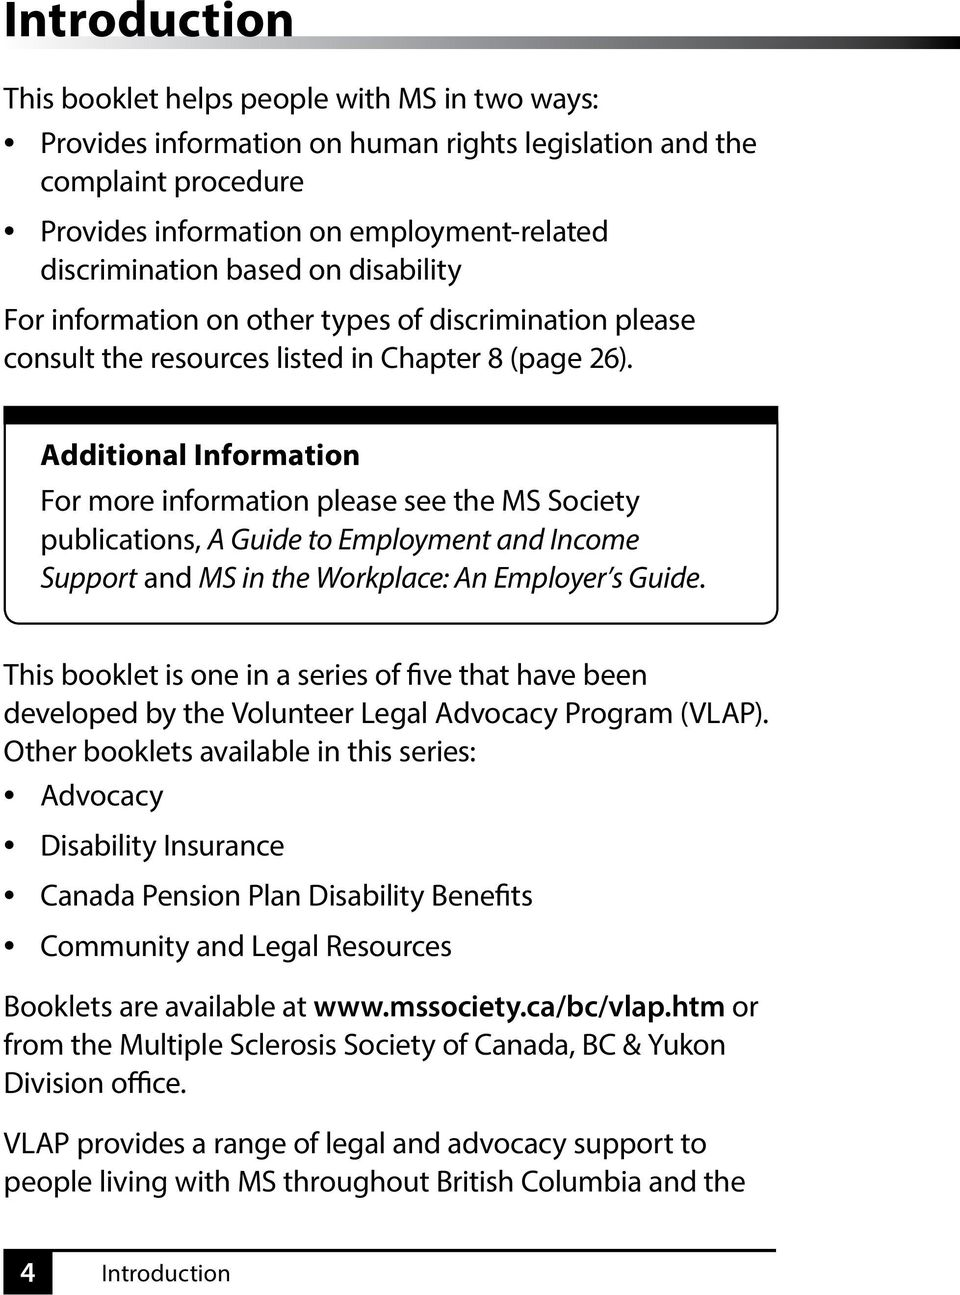 Additional Information For more information please see the MS Society publications, A Guide to Employment and Income Support and MS in the Workplace: An Employer s Guide.